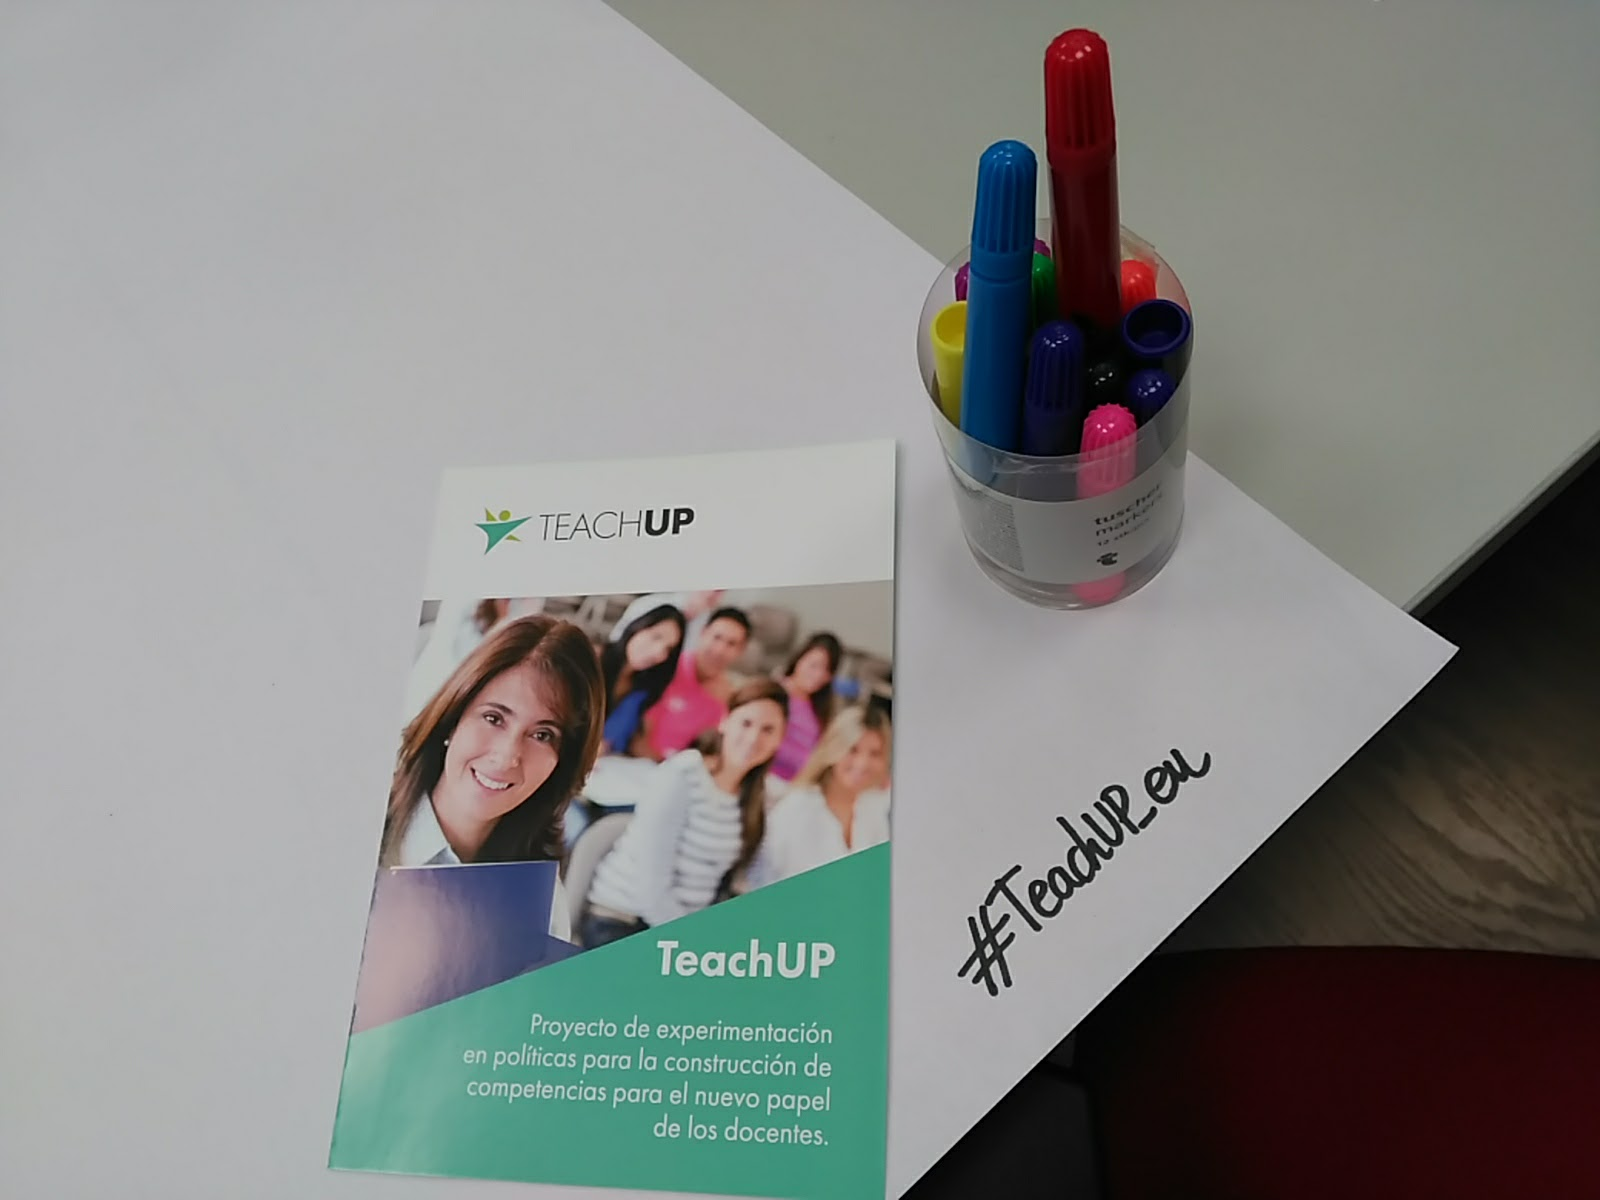 TeachUP, First Country Dialogue Lab in Spain